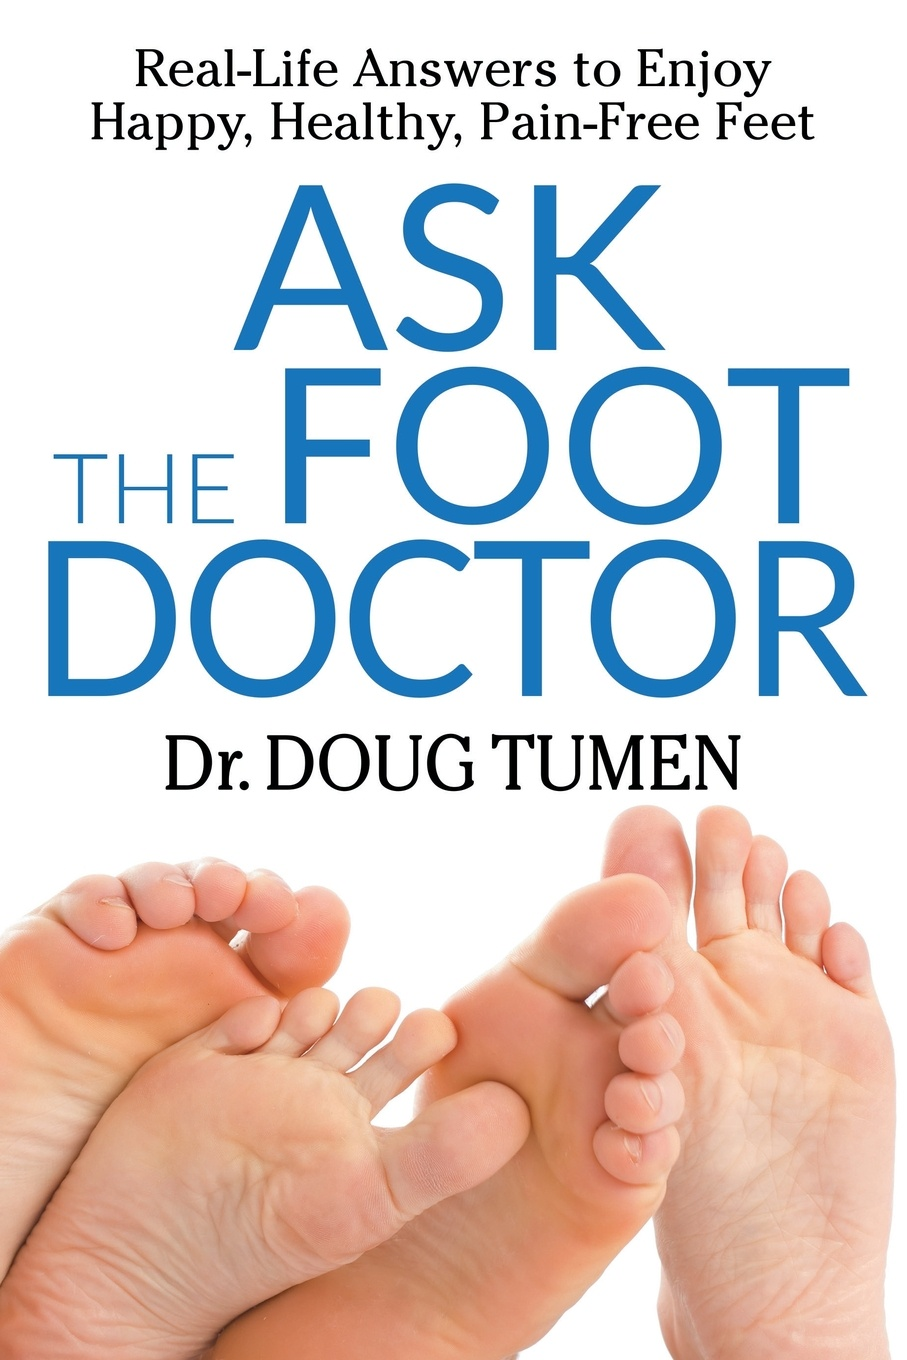 Doug Tumen Ask the Foot Doctor. Real-Life Answers to Enjoy Happy, Healthy, Pain-Free Feet